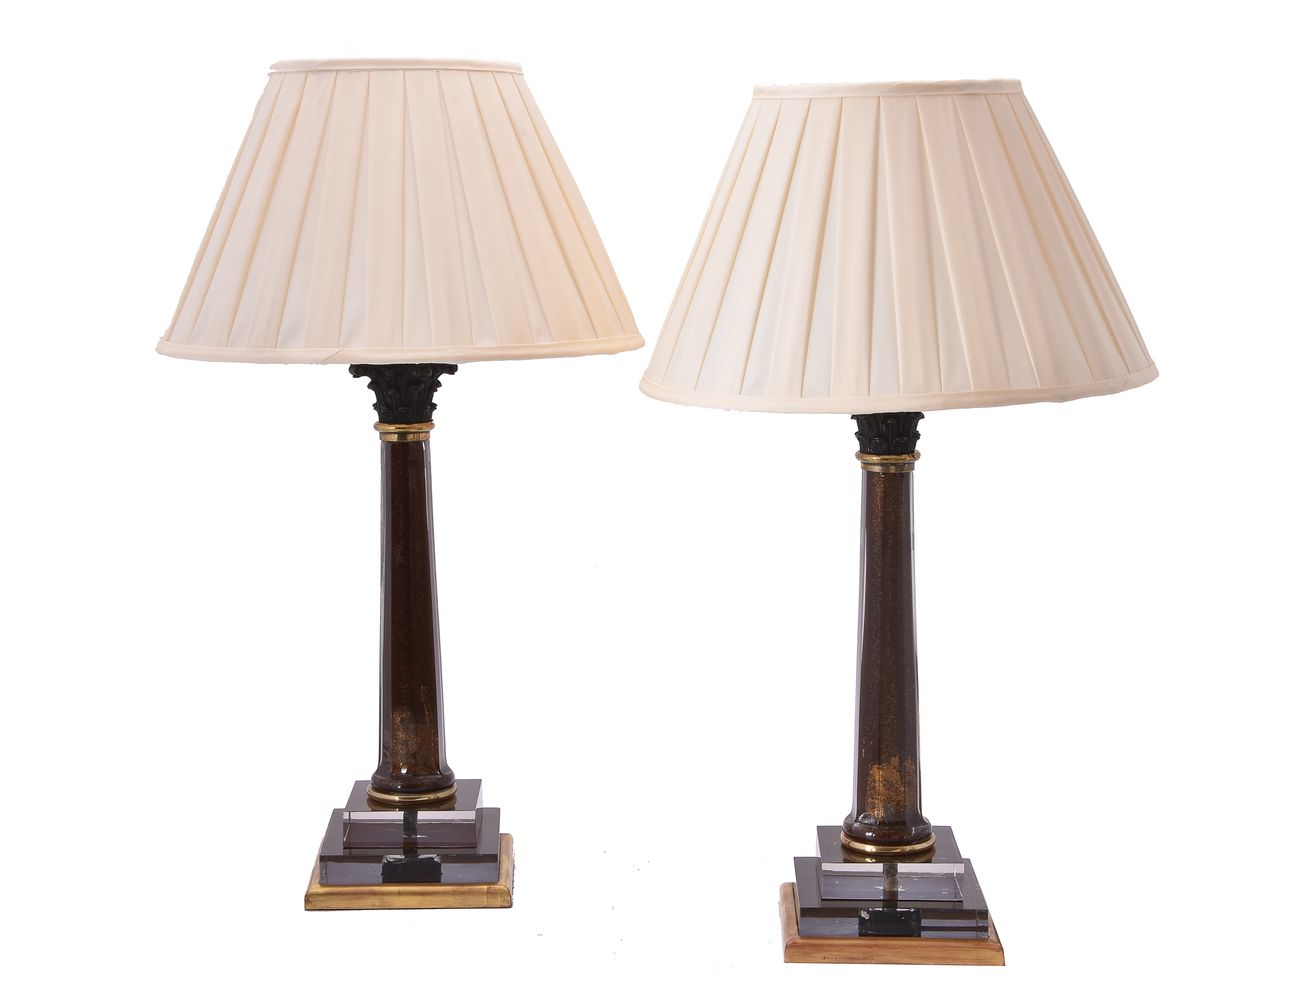 Lot 436 - A pair of gilt metal mounted tinted glass table lamps